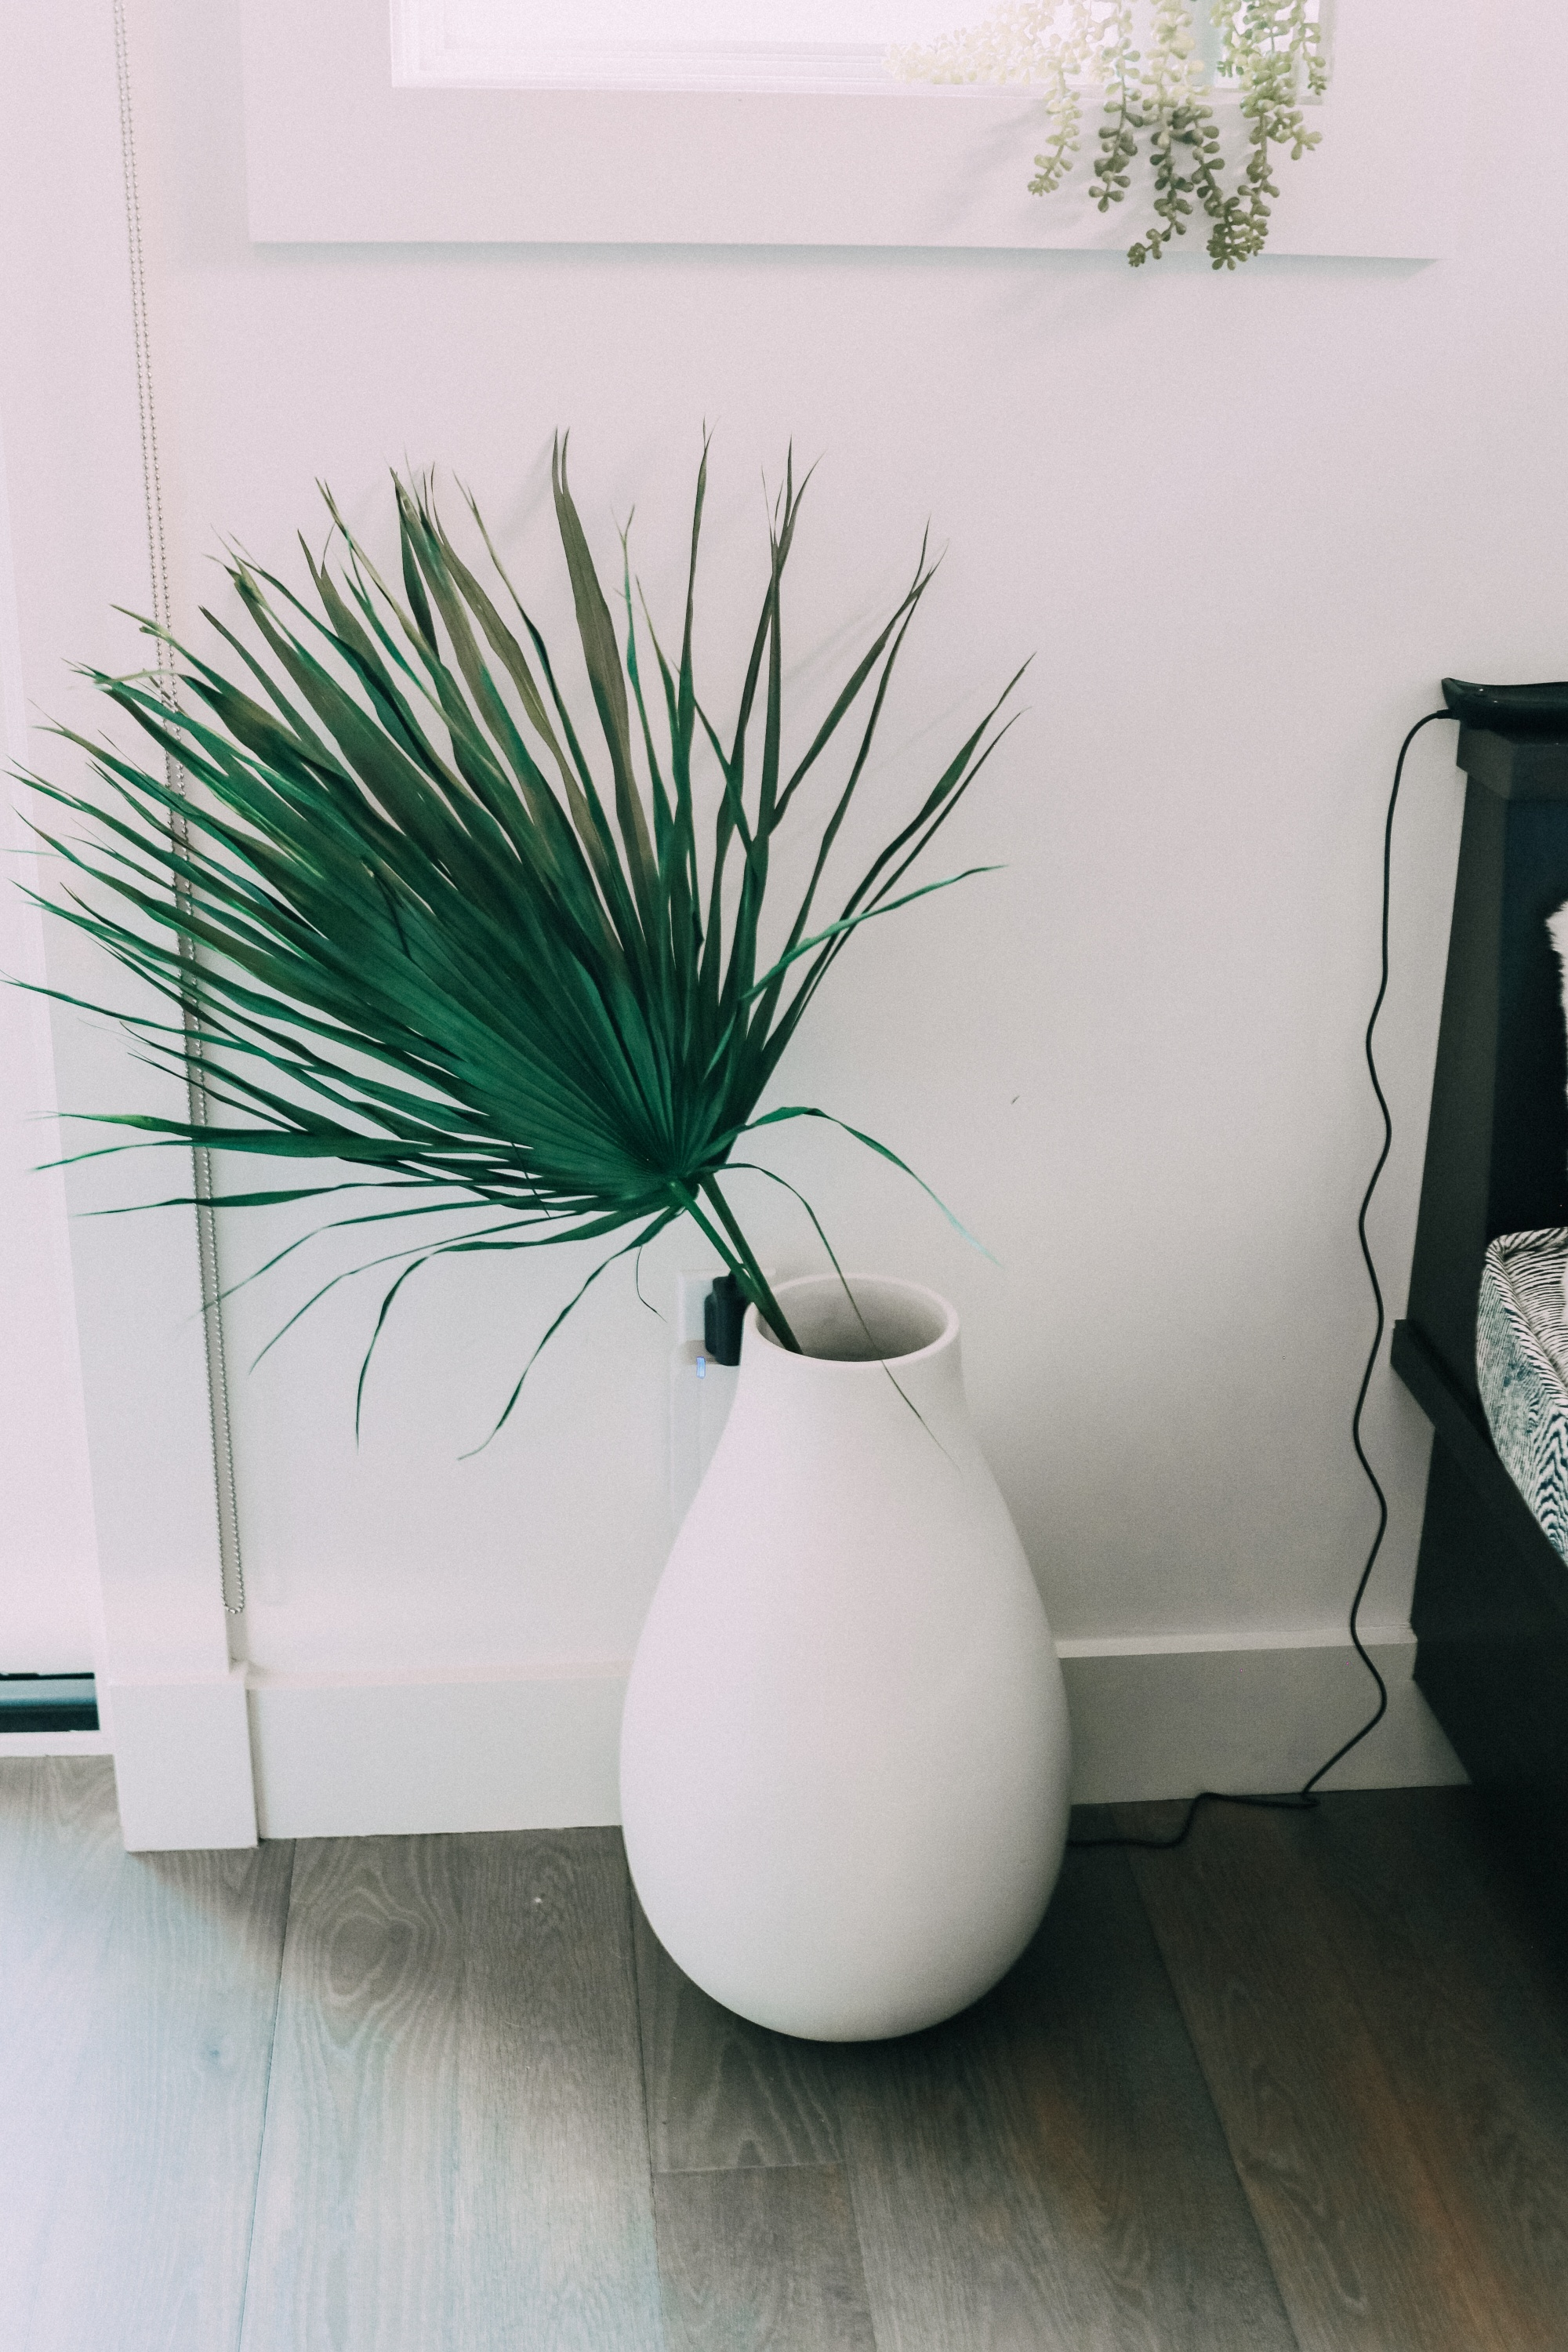 palm frond in vase on floor House Tour modern mountain townhome Telluride Colorado